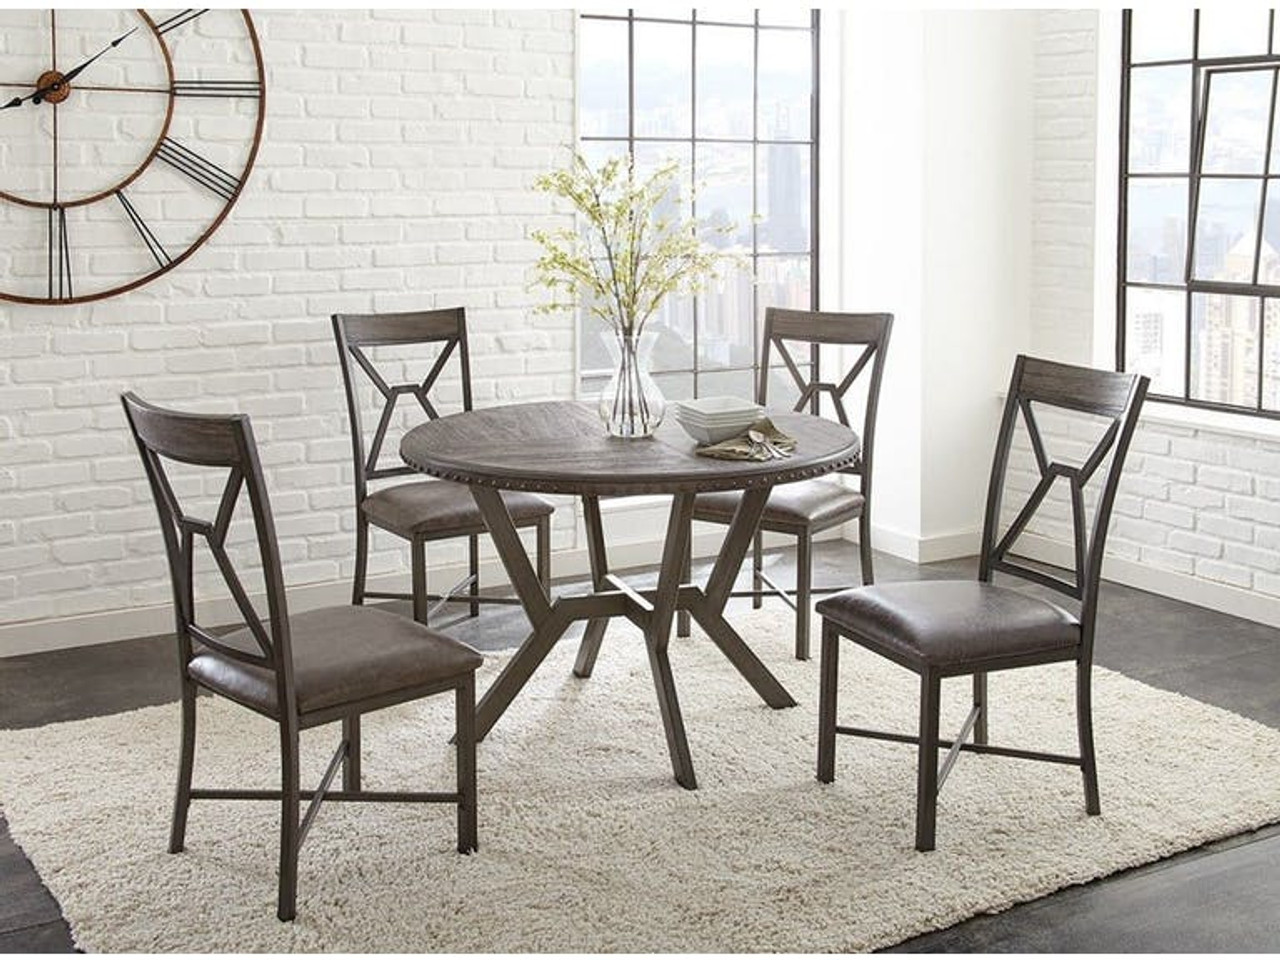 Buy Alamo 5 Piece Dining Set Includes Table 4 Chairs On Sale Near Houston Friendswood League City Starfine Furniture Mattress